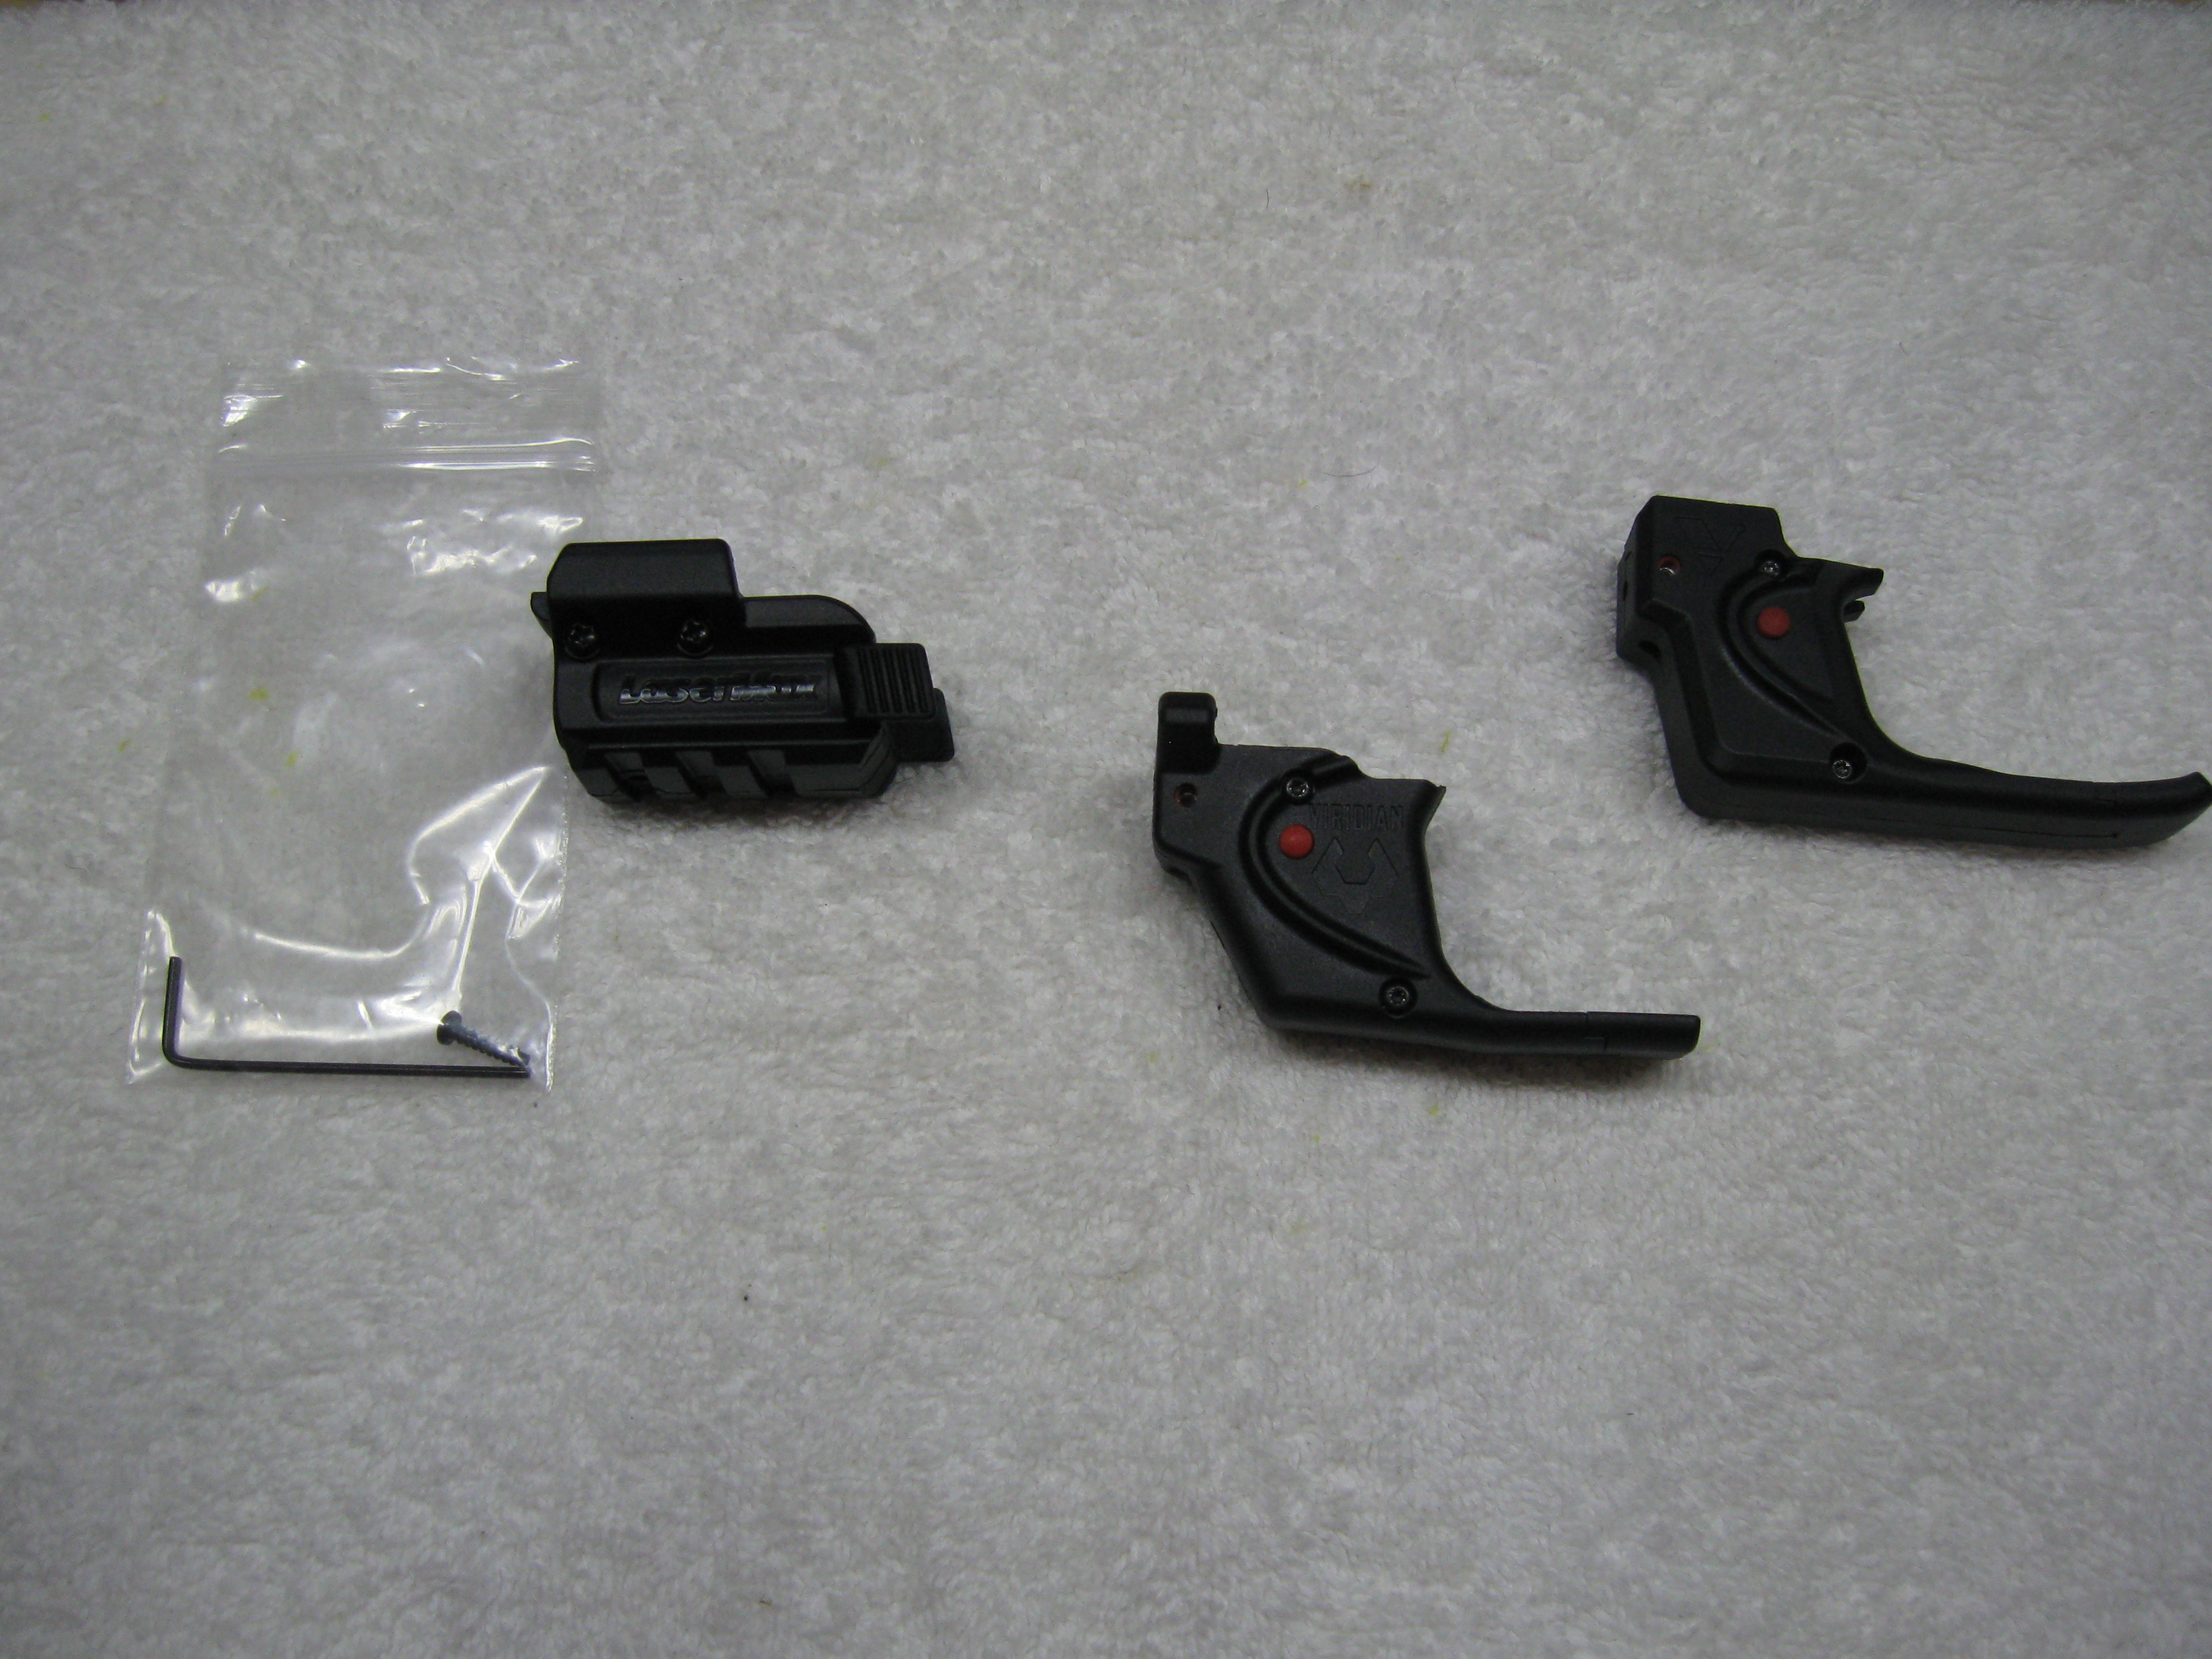 Lasers for sale-Security 9, LCP ll and LaserMax Spartan (ALL SOLD)-img_0219.jpg